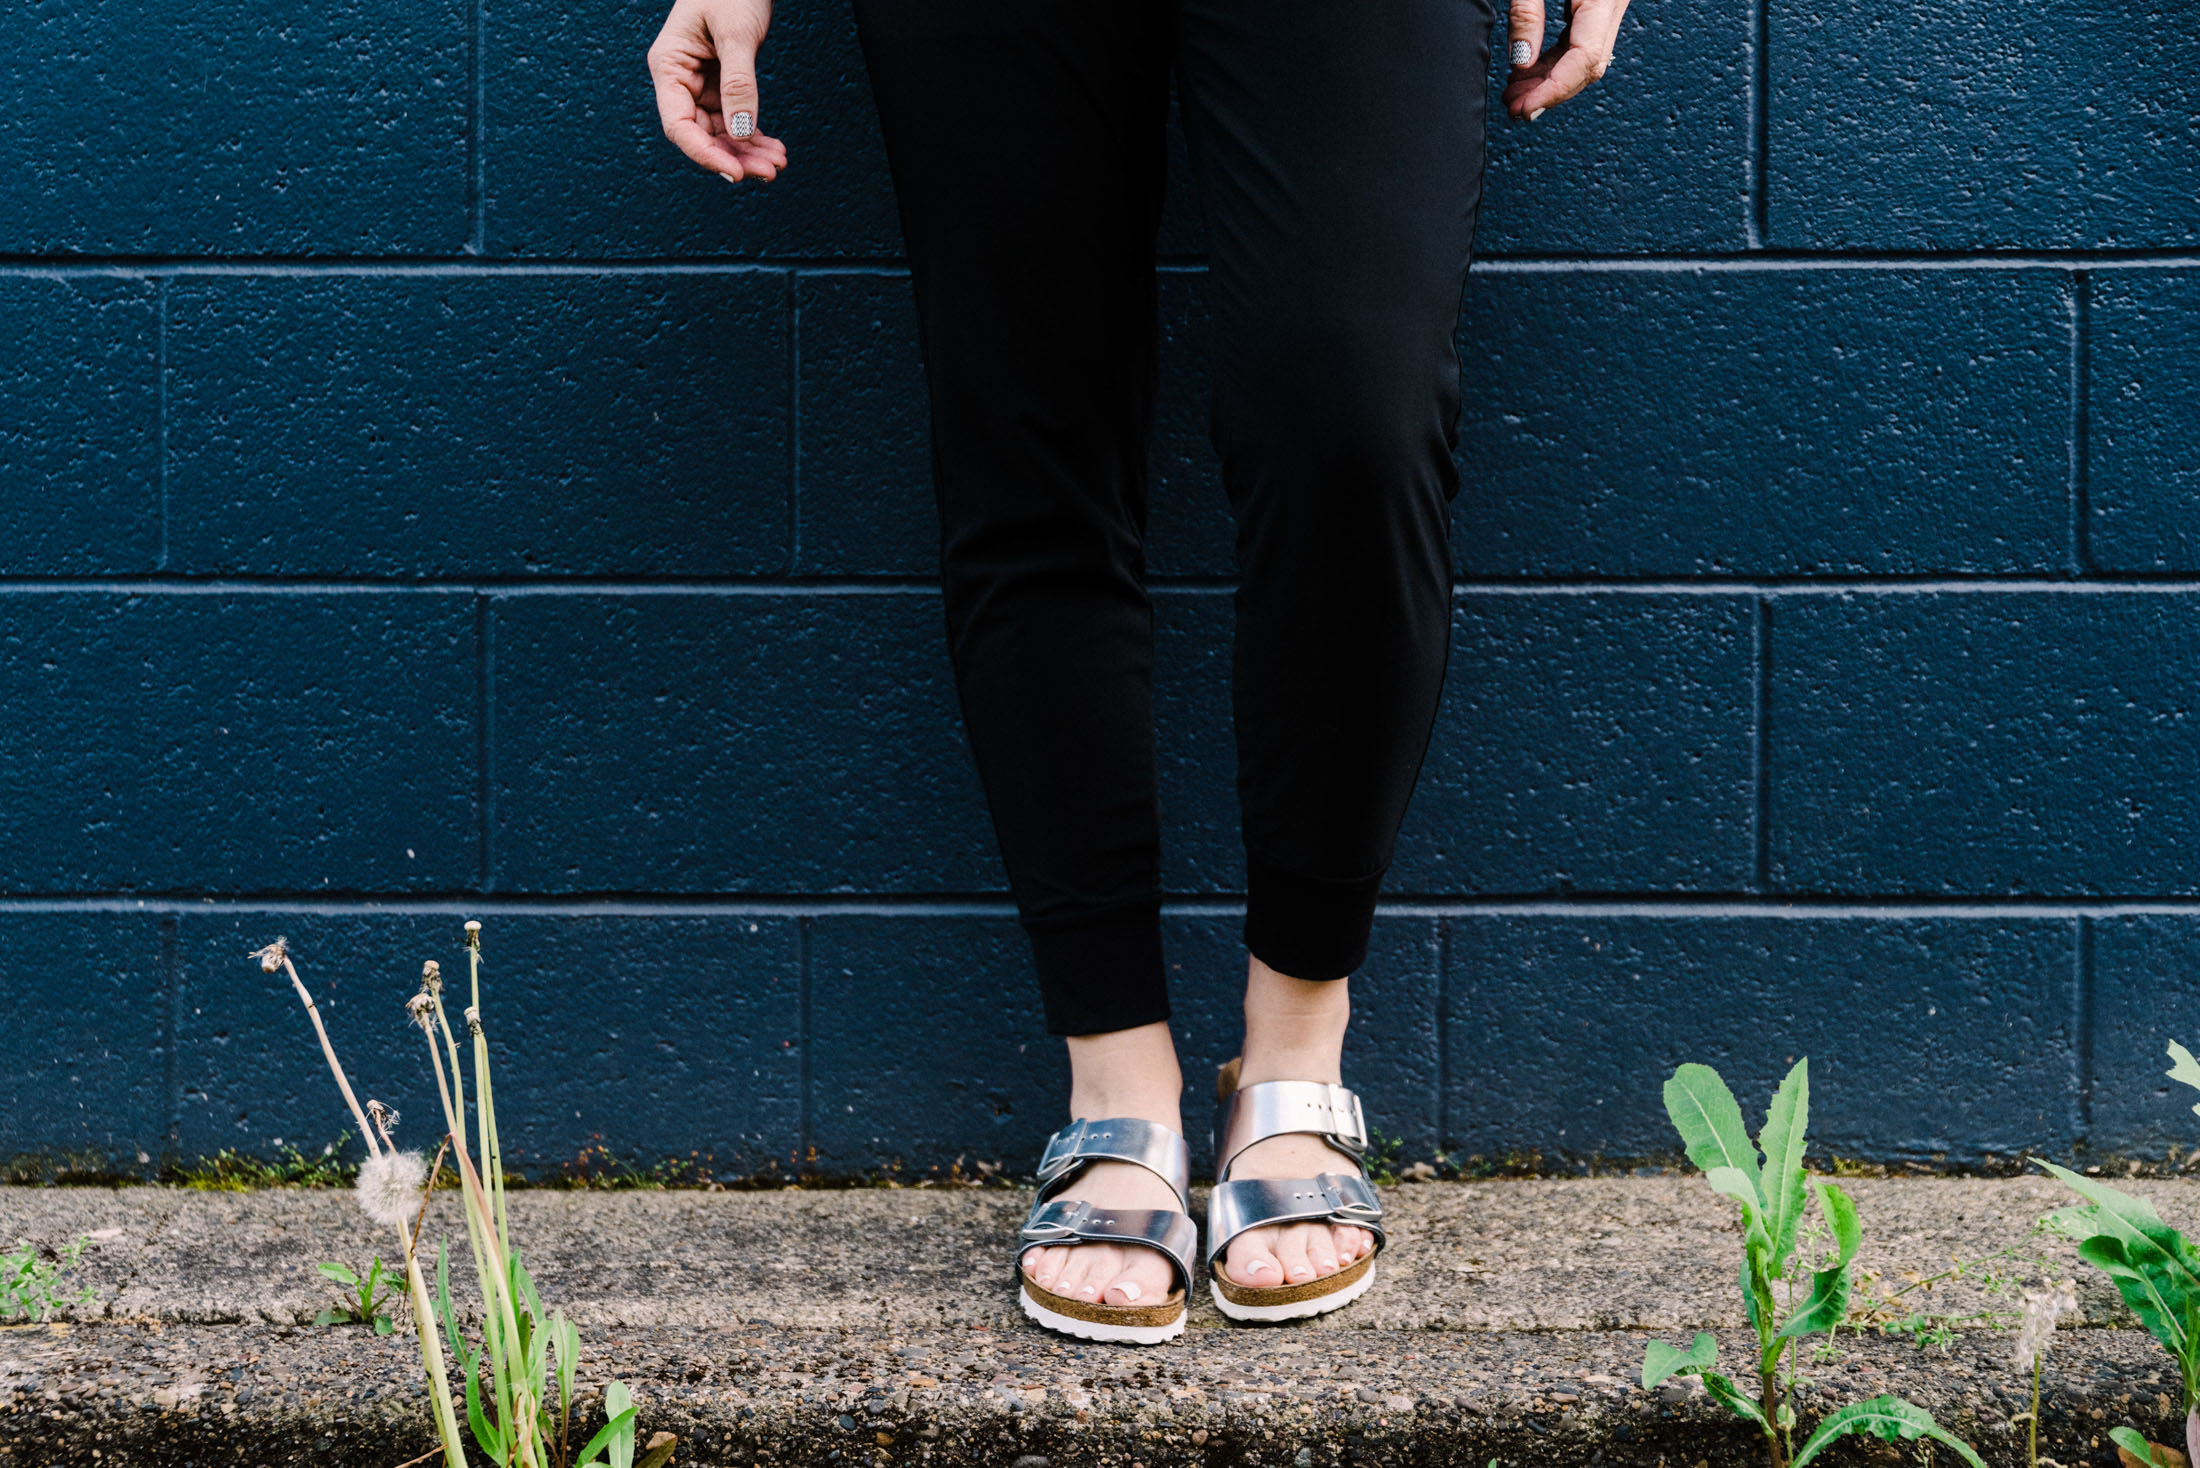 Casual spring & summer momiform? We're on it. Graphic muscle tee + comfy joggers + shiny Birkenstocks = DONE. Styling it up here.